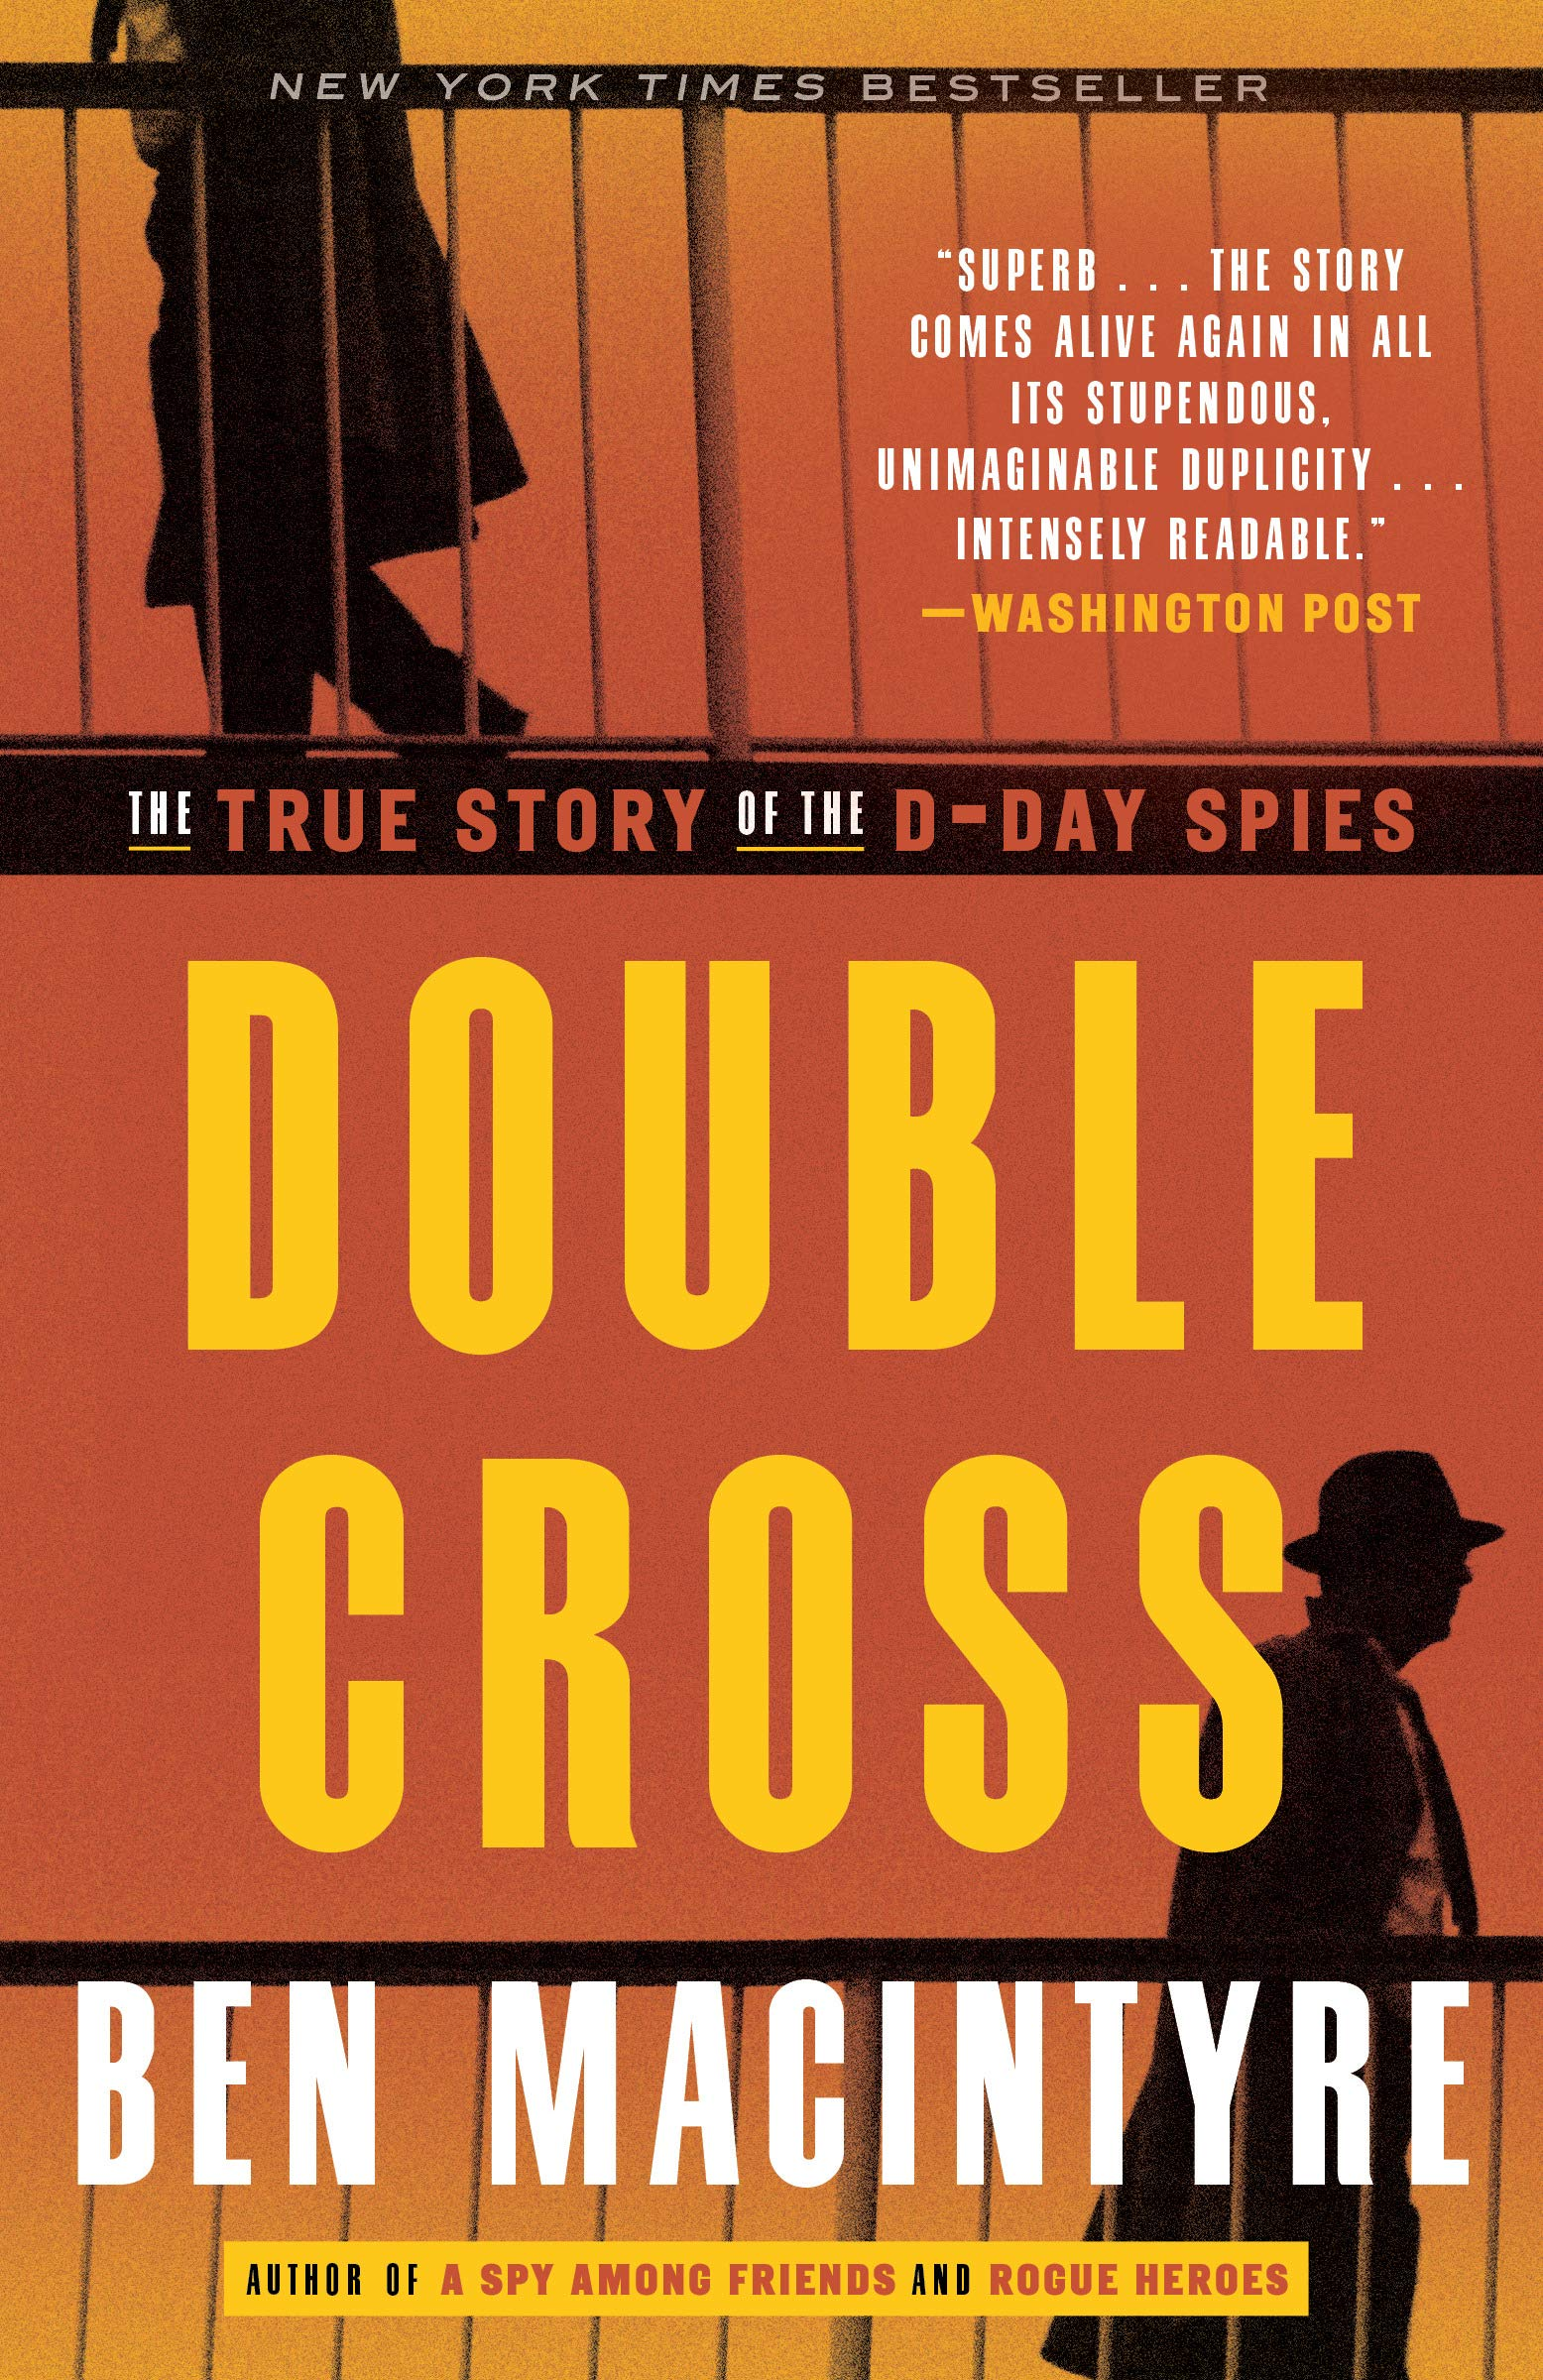 Double Cross The True Story Of The D Day Spies Ben Macintyre